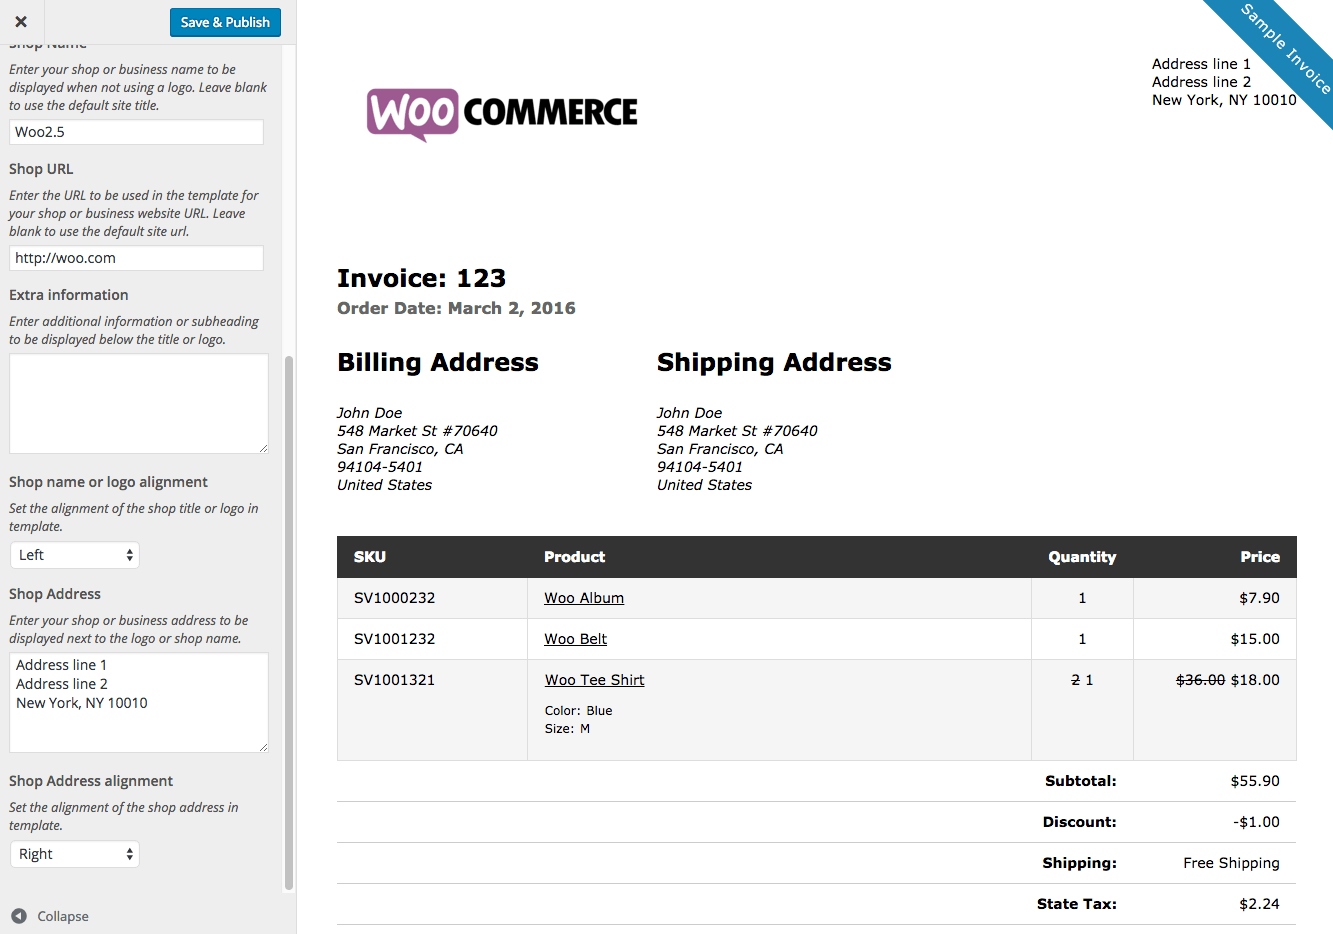 Usdgus  Unusual Print Invoices Amp Packing Lists  Woocommerce With Remarkable Woocommerce Print Invoices  Packing Lists Customizer With Divine Service Tax Invoice Format Also Sample Invoices For Small Business In Addition Invoice Example Australia And Filemaker Invoice As Well As Past Due Invoice Collection Letter Additionally Meaning Of Pro Forma Invoice From Woocommercecom With Usdgus  Remarkable Print Invoices Amp Packing Lists  Woocommerce With Divine Woocommerce Print Invoices  Packing Lists Customizer And Unusual Service Tax Invoice Format Also Sample Invoices For Small Business In Addition Invoice Example Australia From Woocommercecom